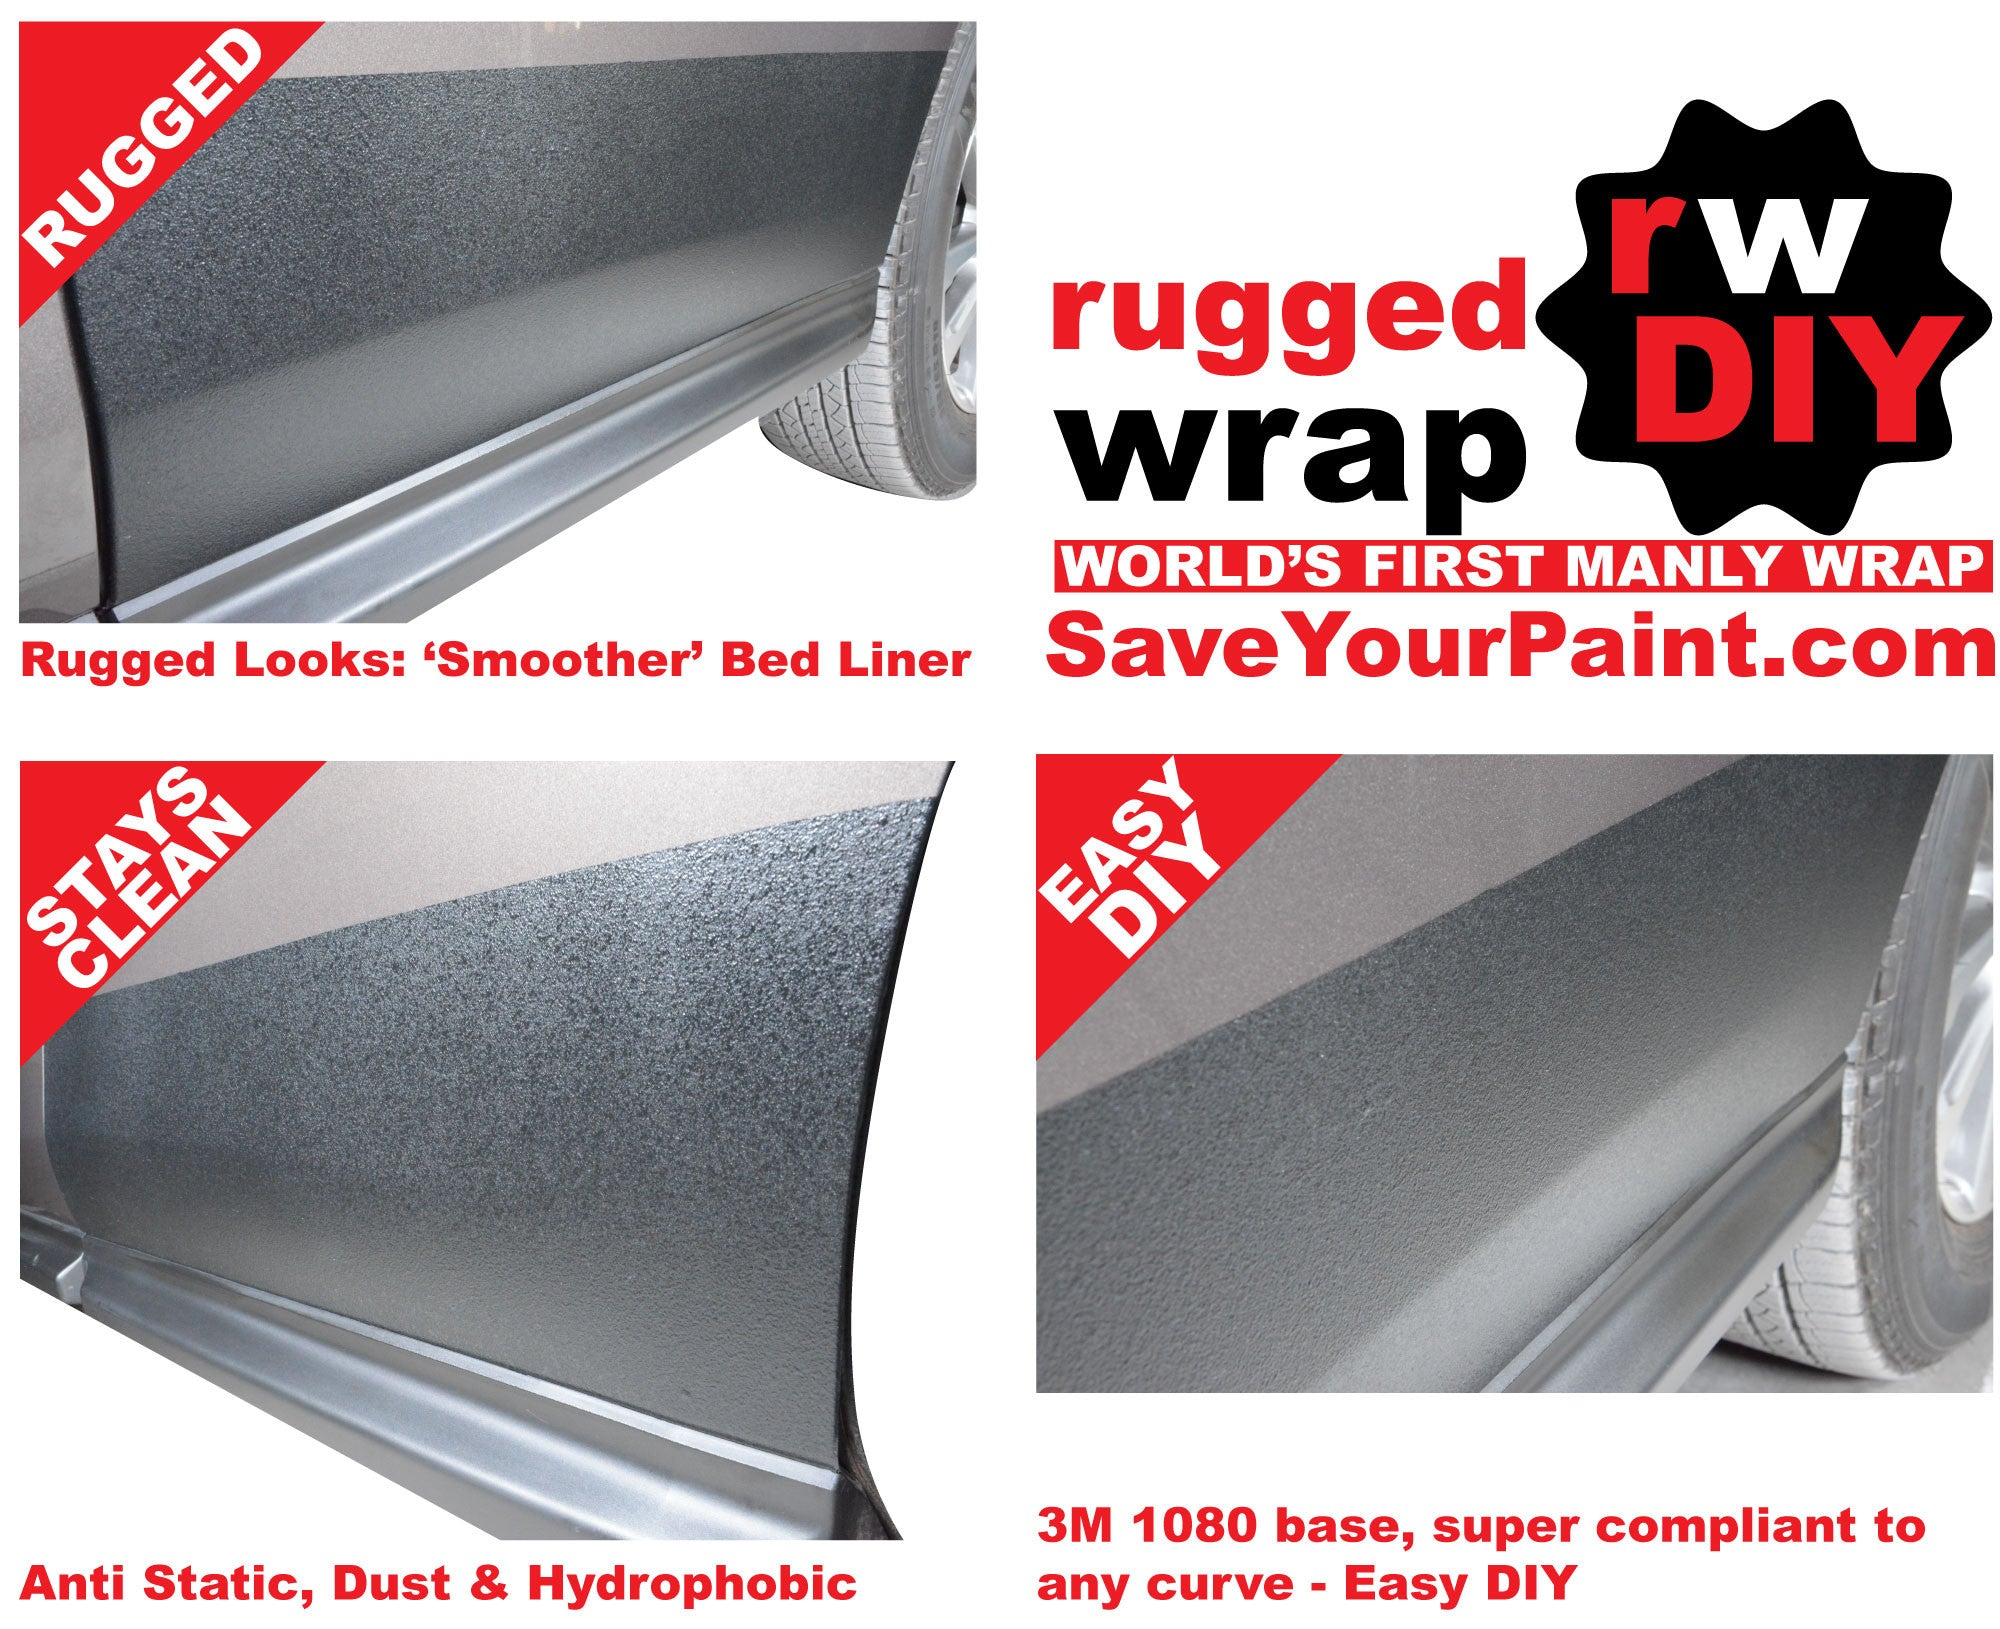 RuggedWrapDIY - Tough Wrap with Bed Liner on Rocker Panels Look